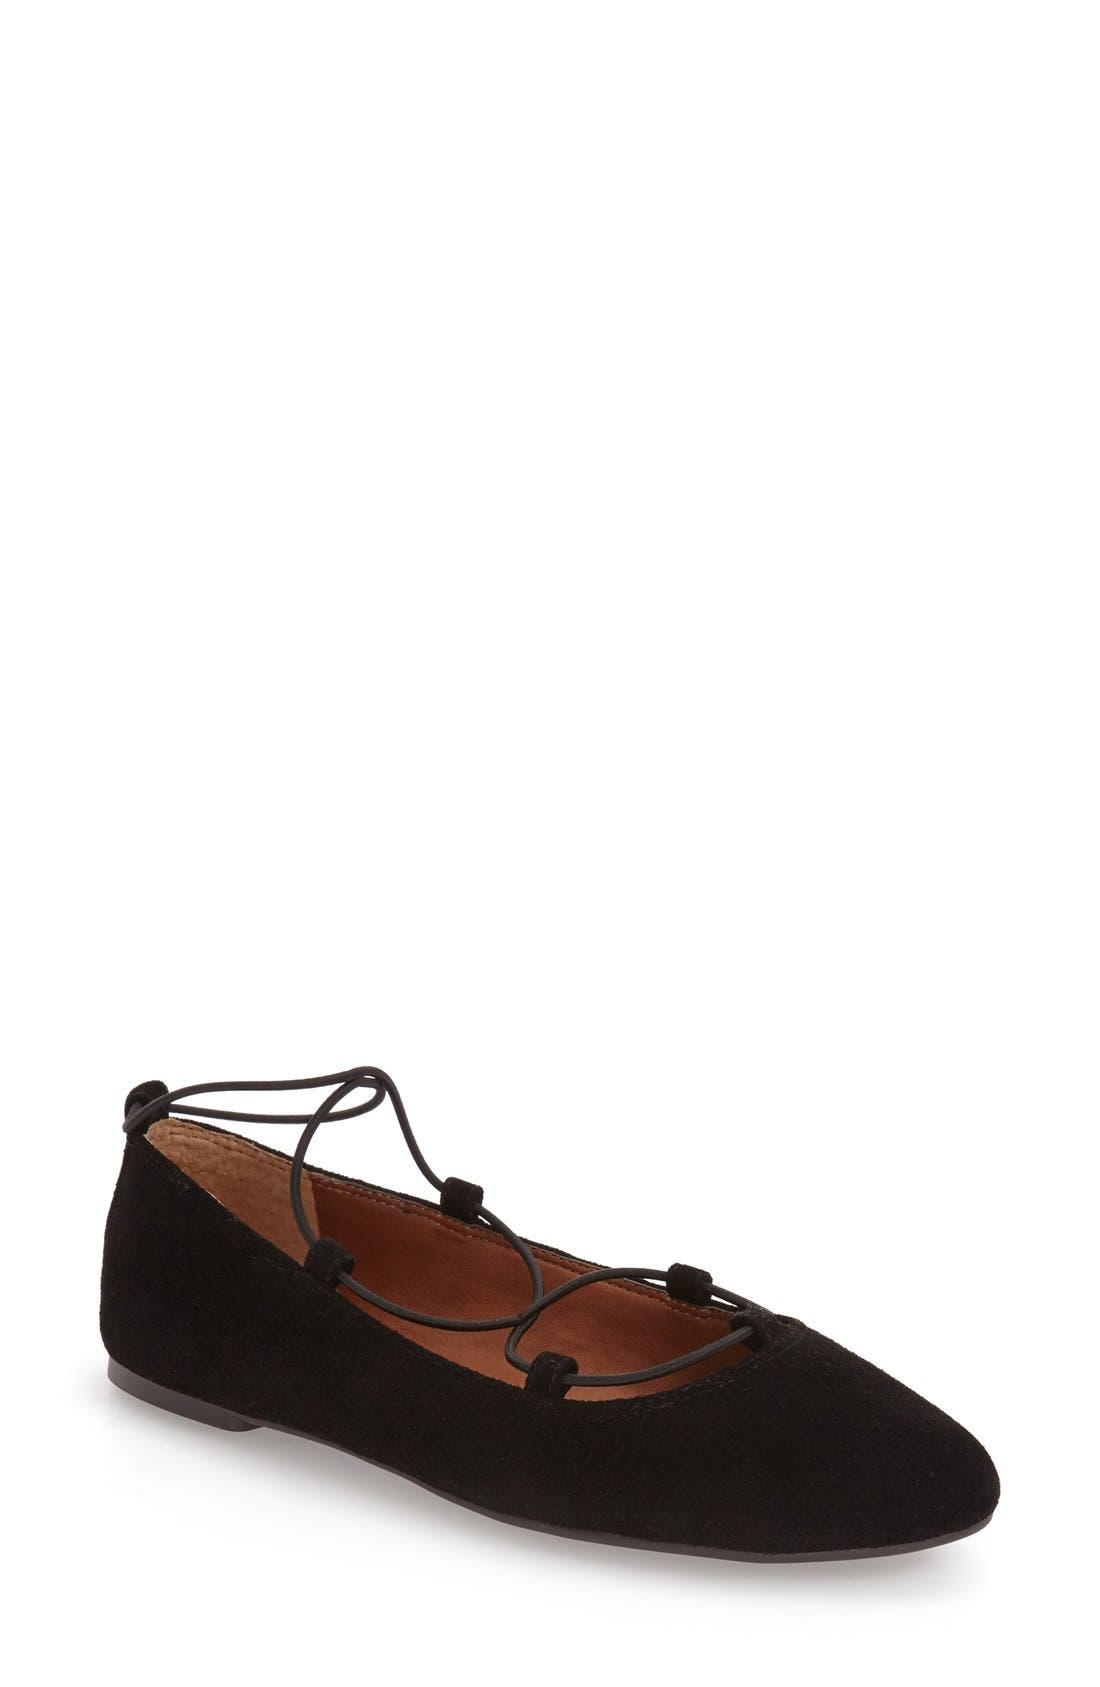 'Aviee' Lace-Up Flat,                         Main,                         color,